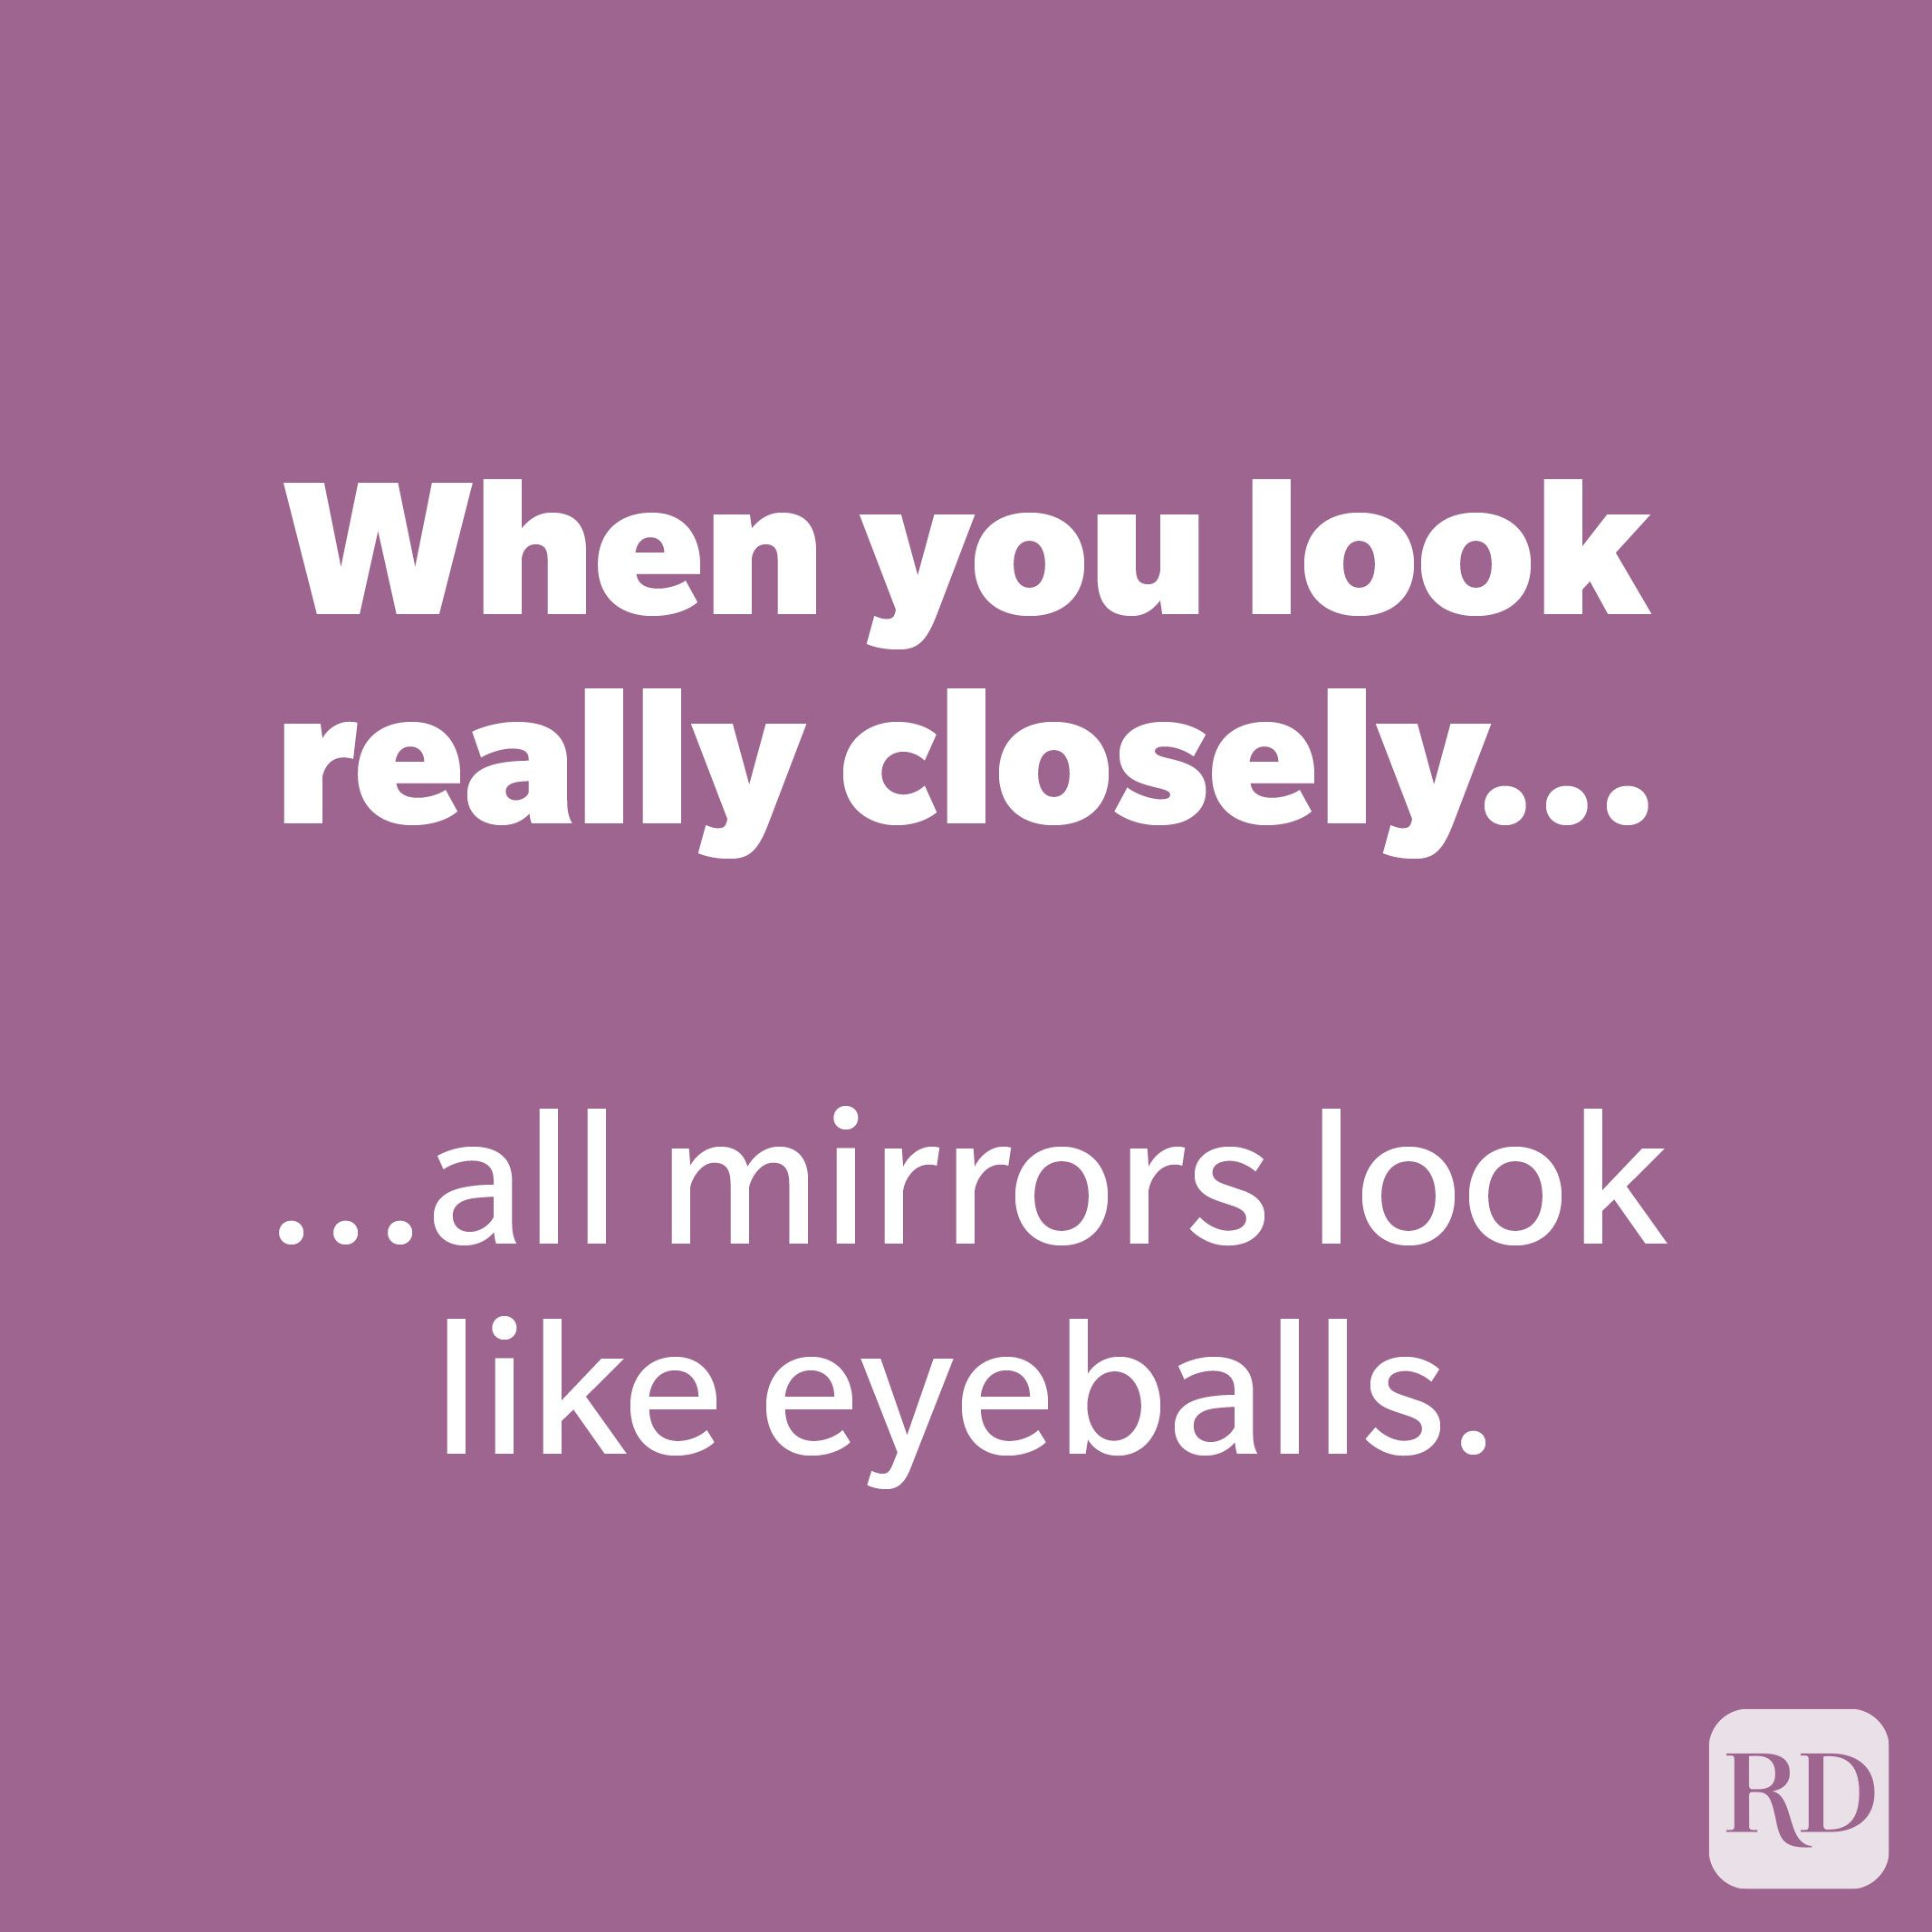 When you look really closely...